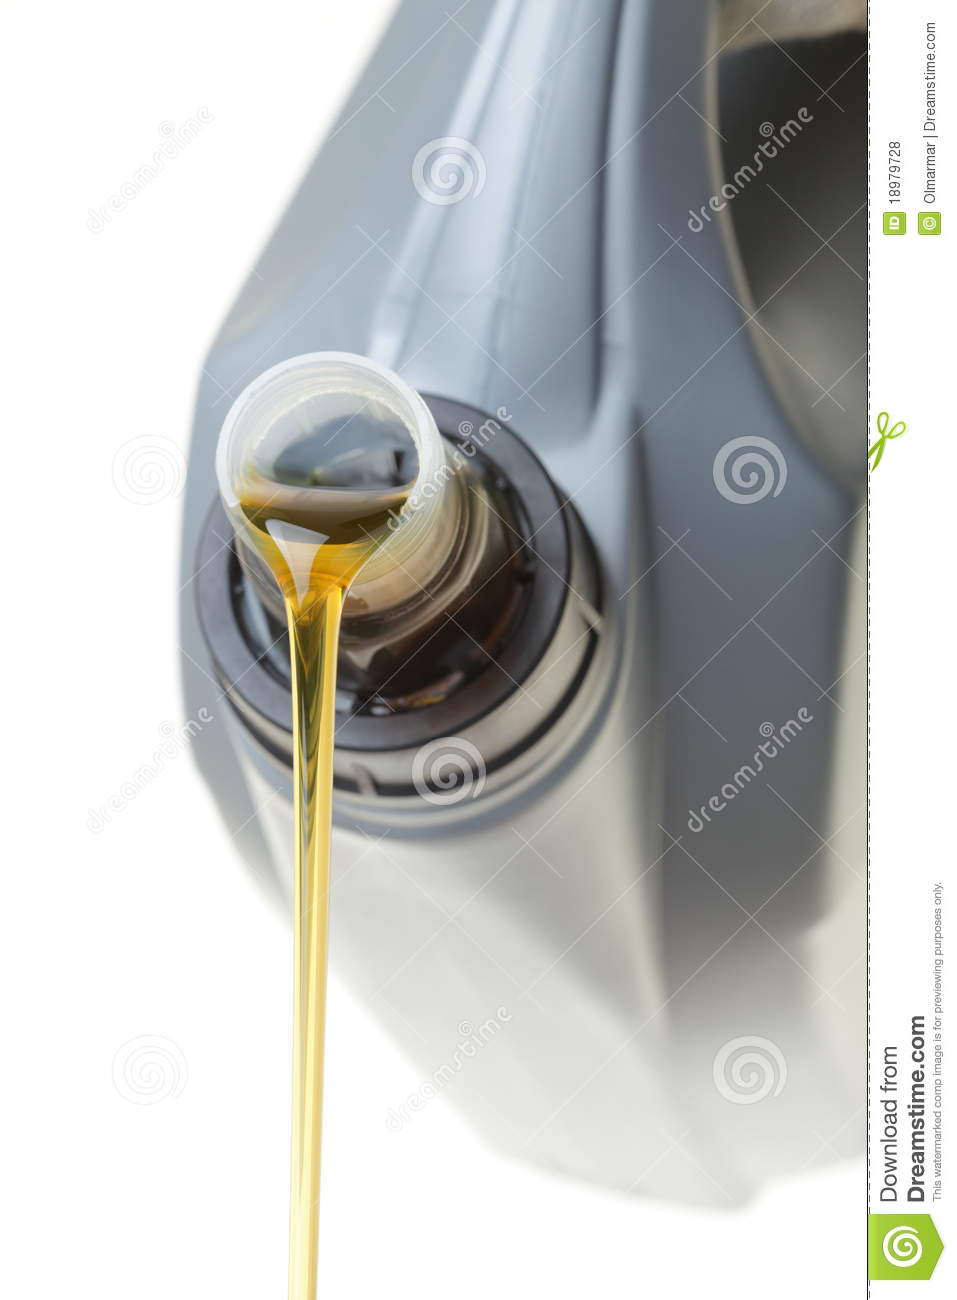 Can Car Engine Oil Isolated On White Royalty Free Stock